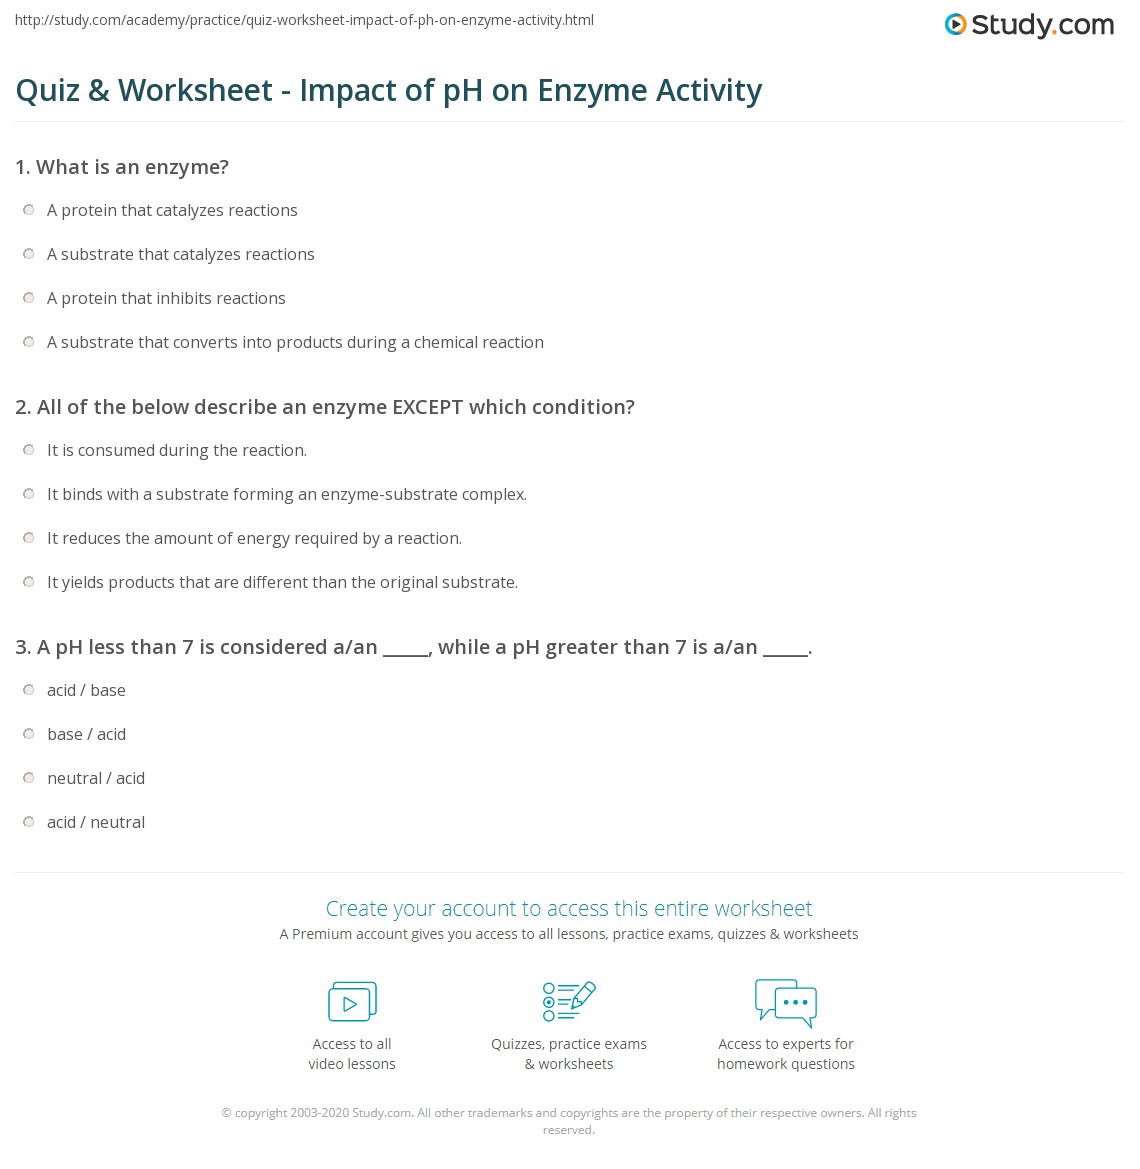 Quiz Worksheet Impact Of Ph On Enzyme Activity Study Com